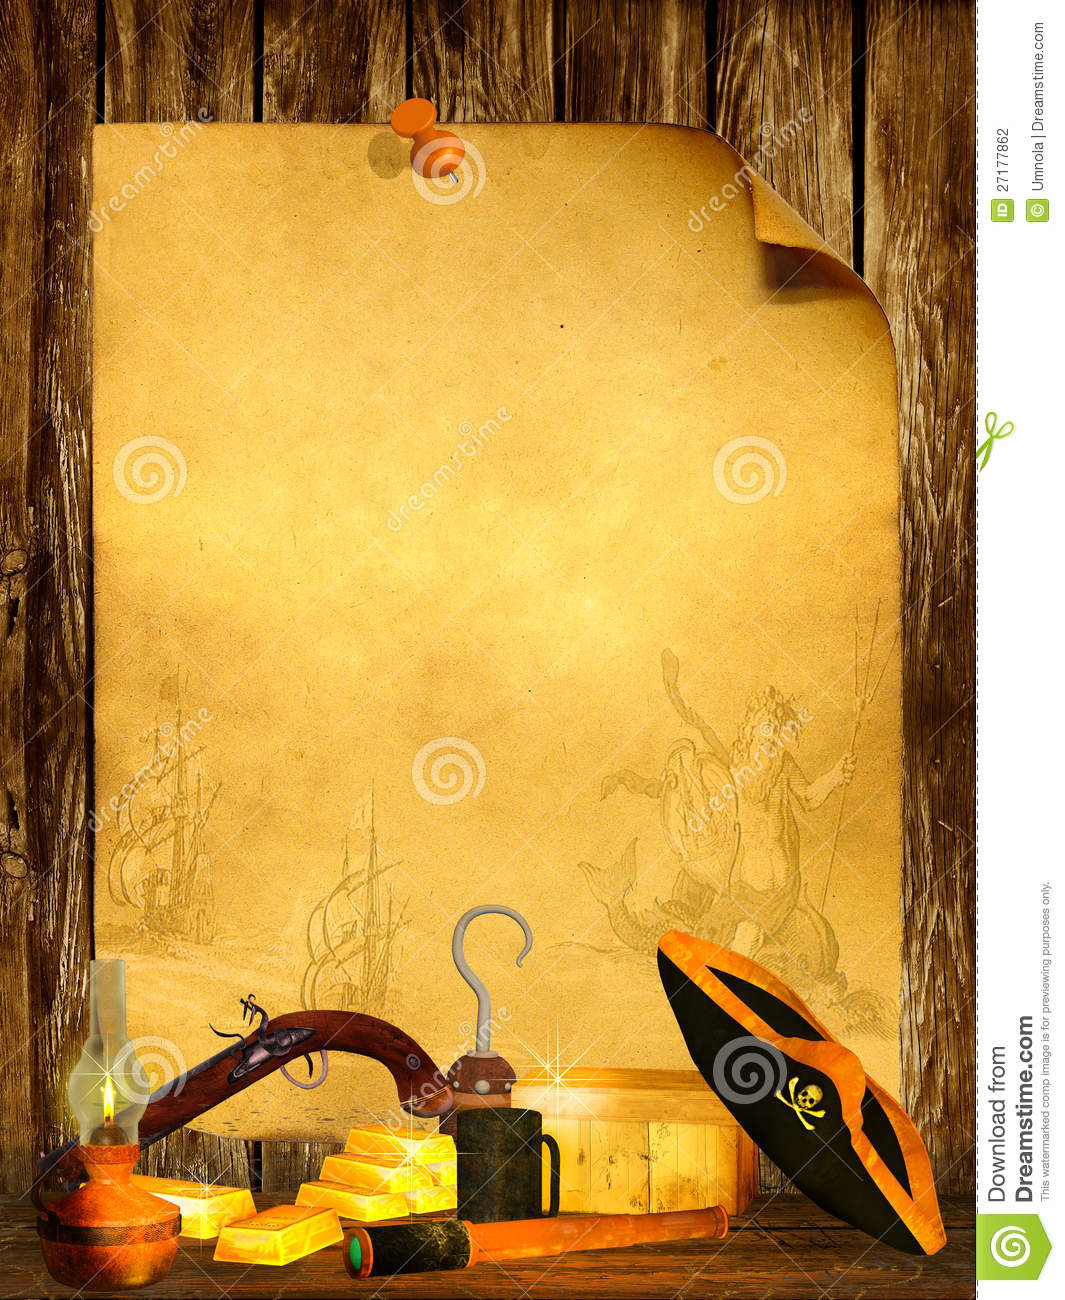 Pirate Background Stock Photography Image 27177862